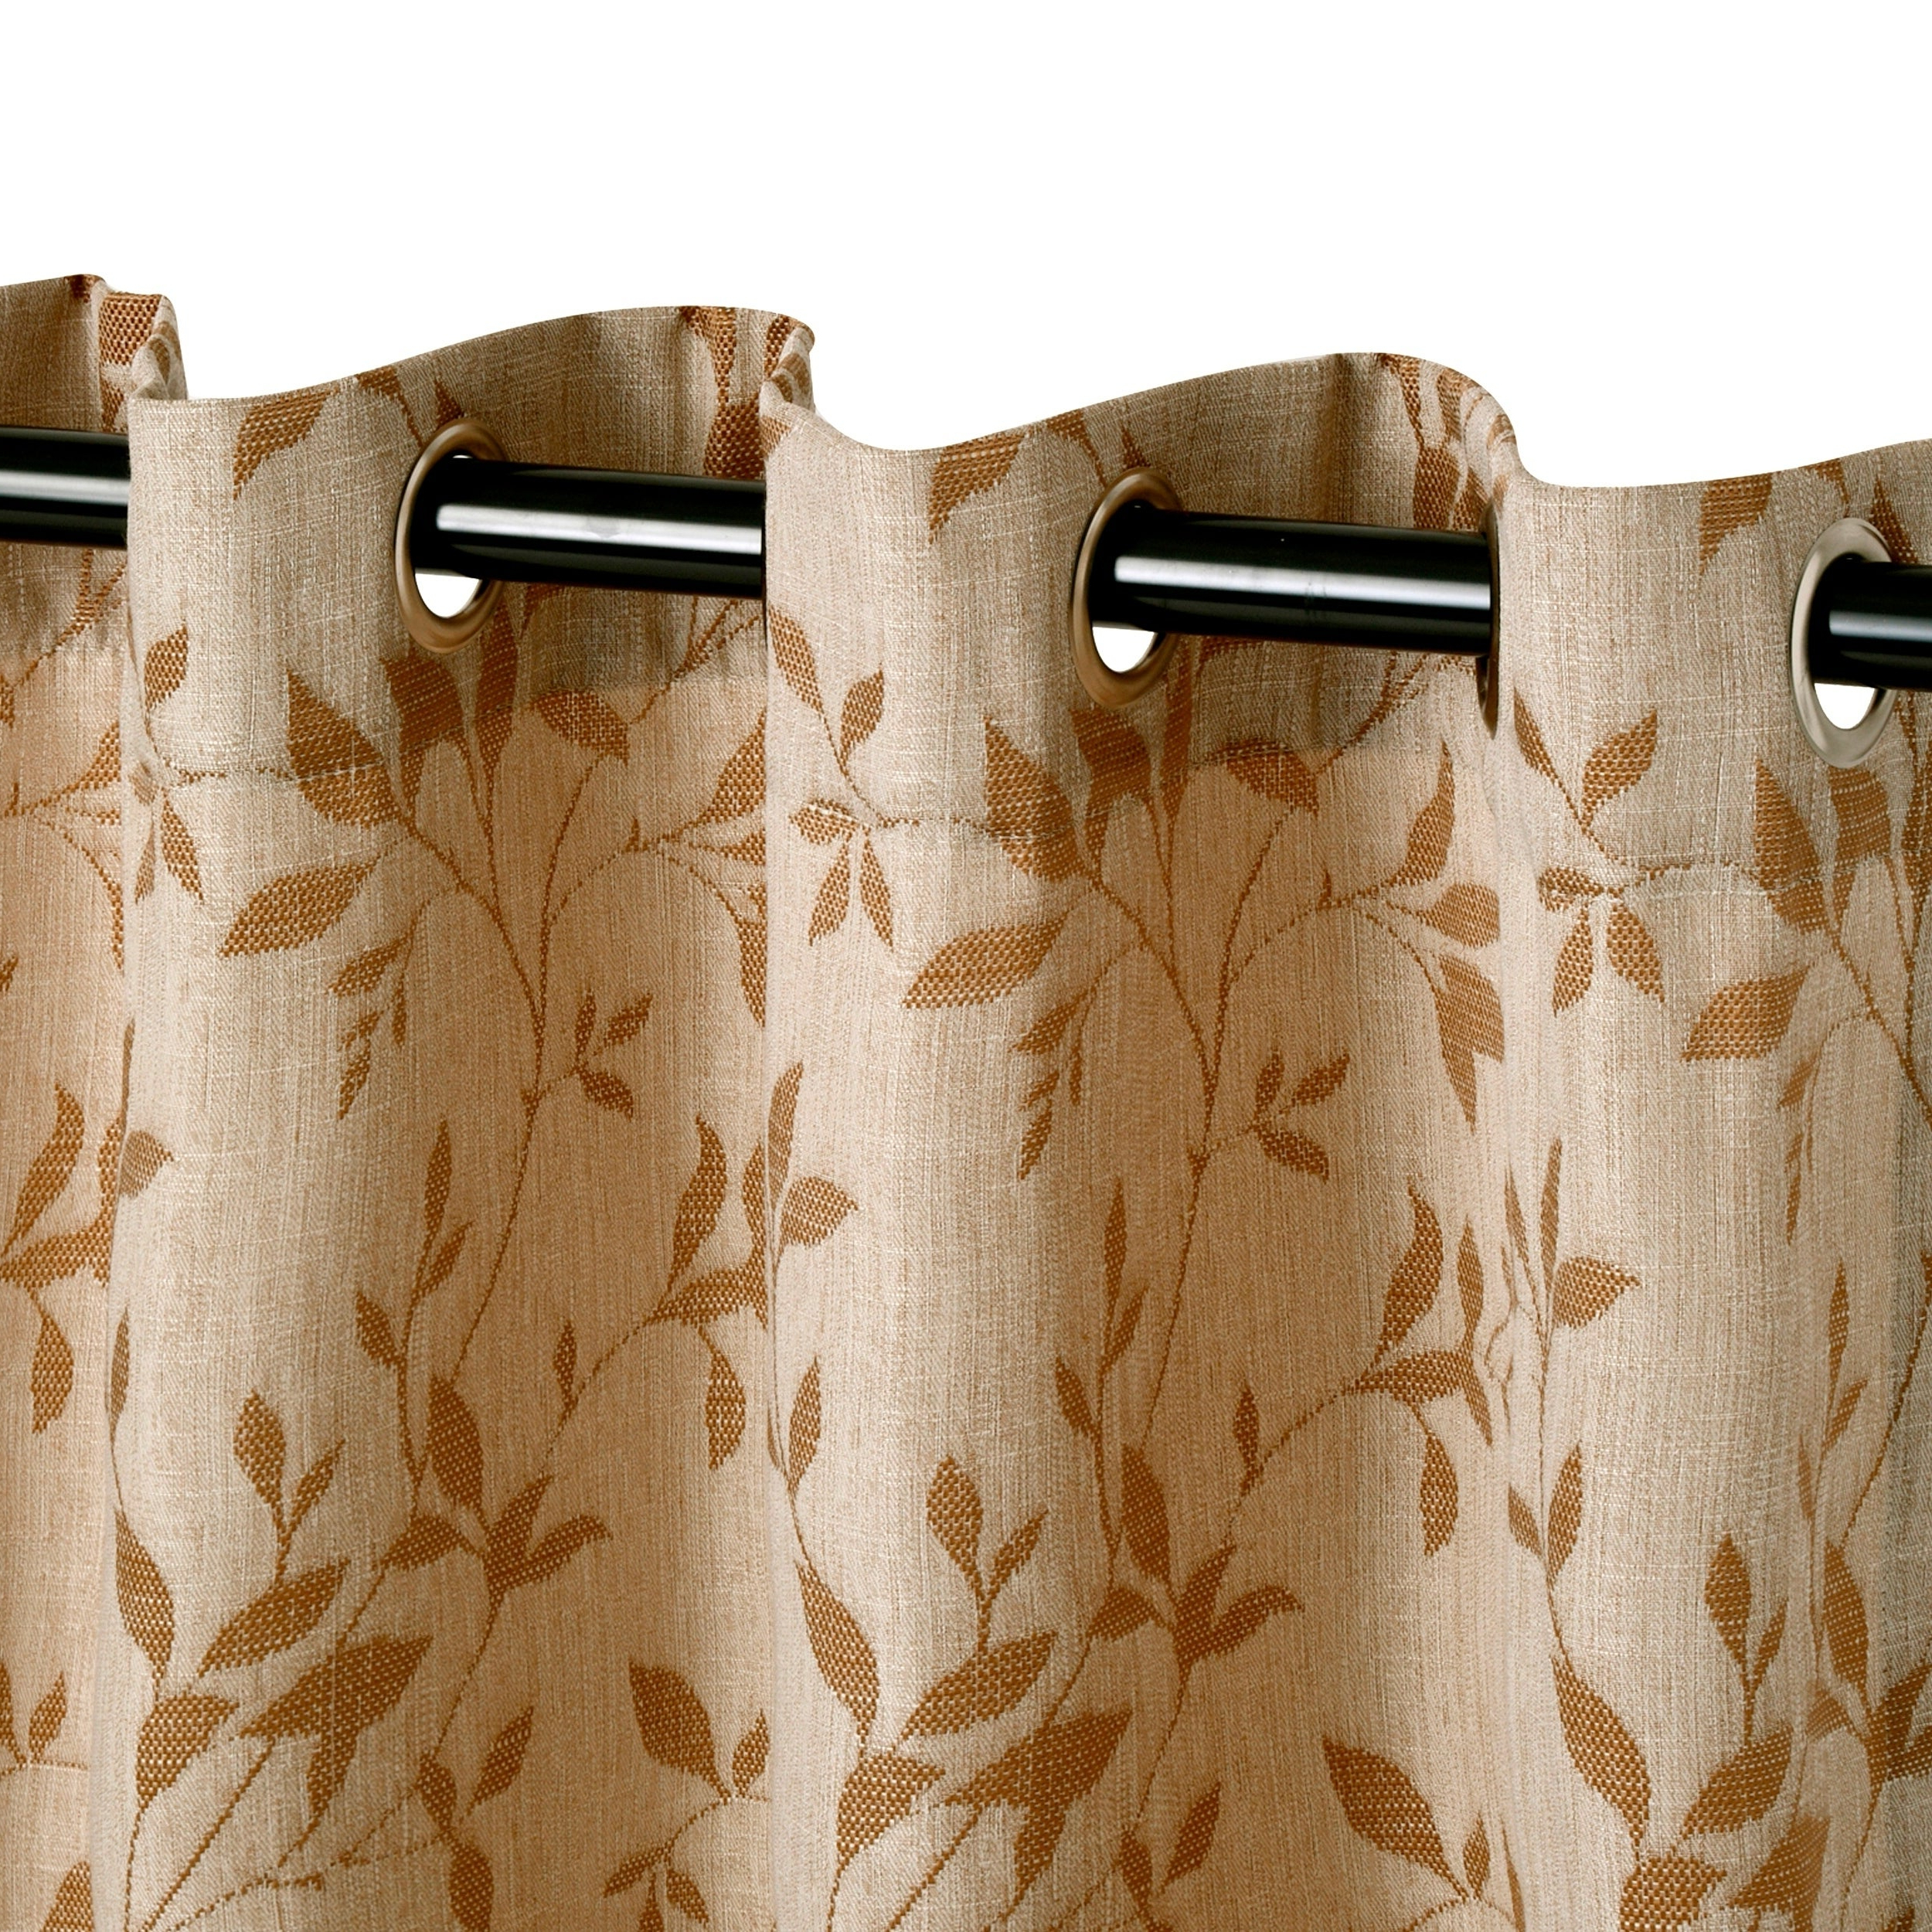 Miranda Haus Comera Jacquard Grommet Curtain Panel (set Of 2) Throughout Most Current Miranda Haus Labrea Damask Jacquard Grommet Curtain Panels (View 20 of 20)